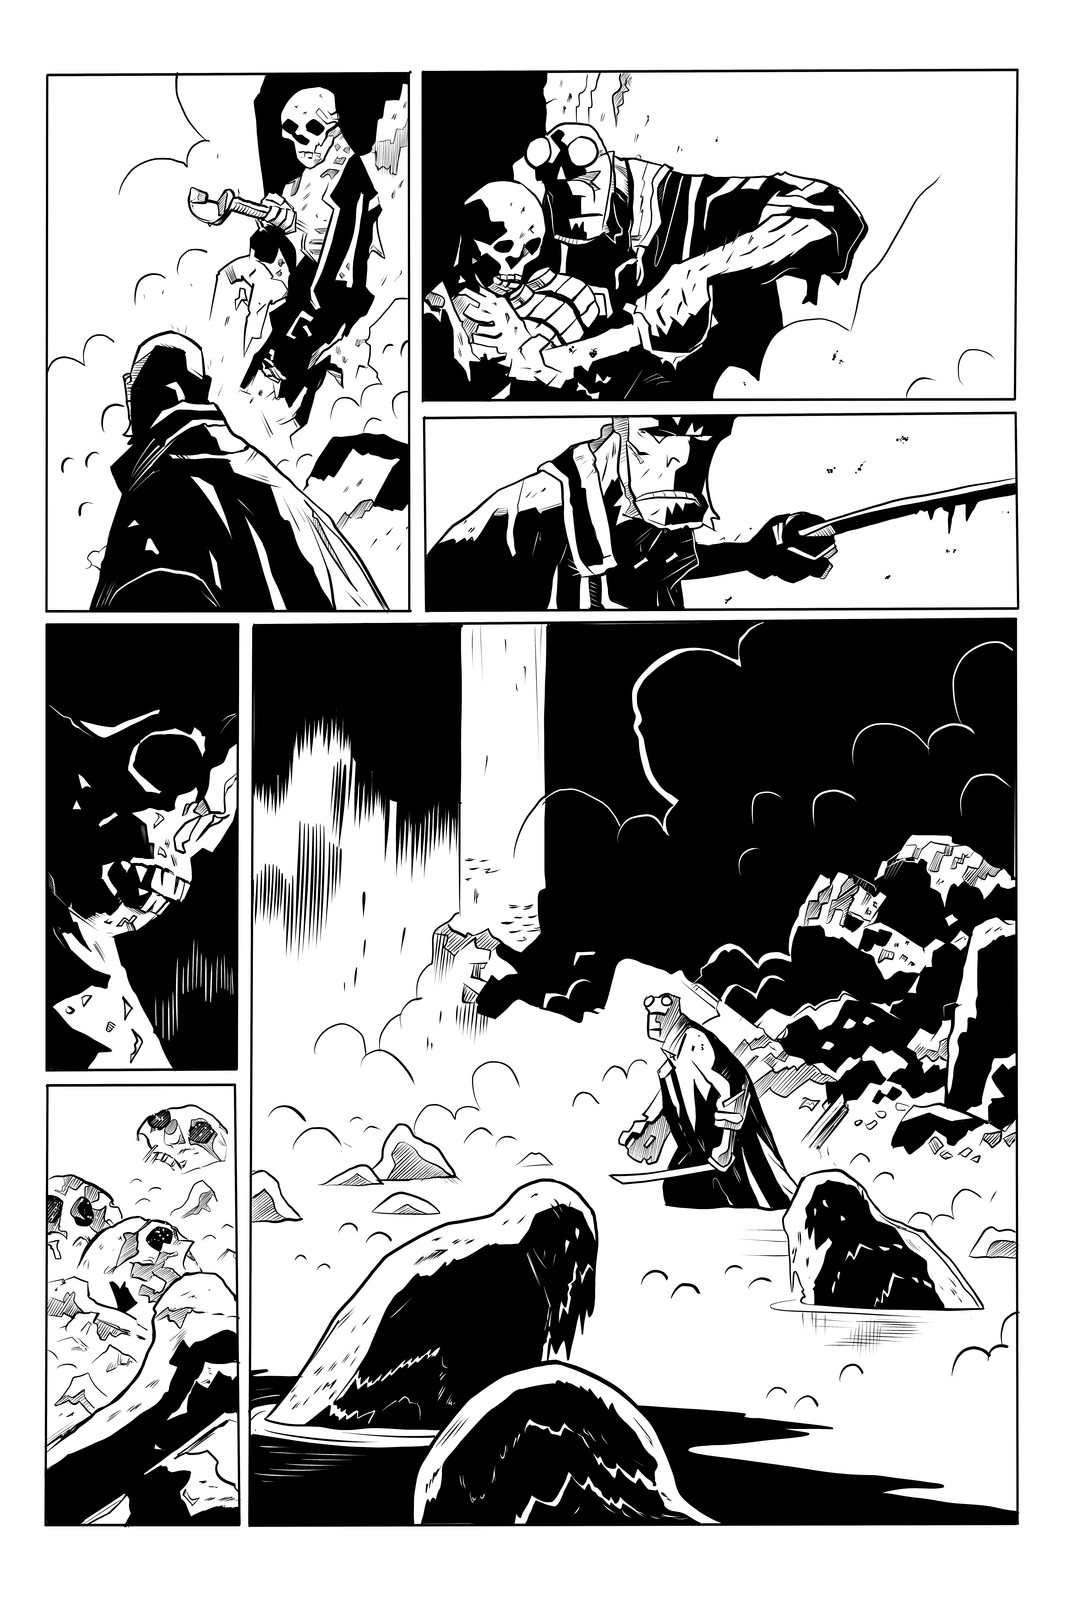 Hell Boy - The Island Sample Page 3 of 5